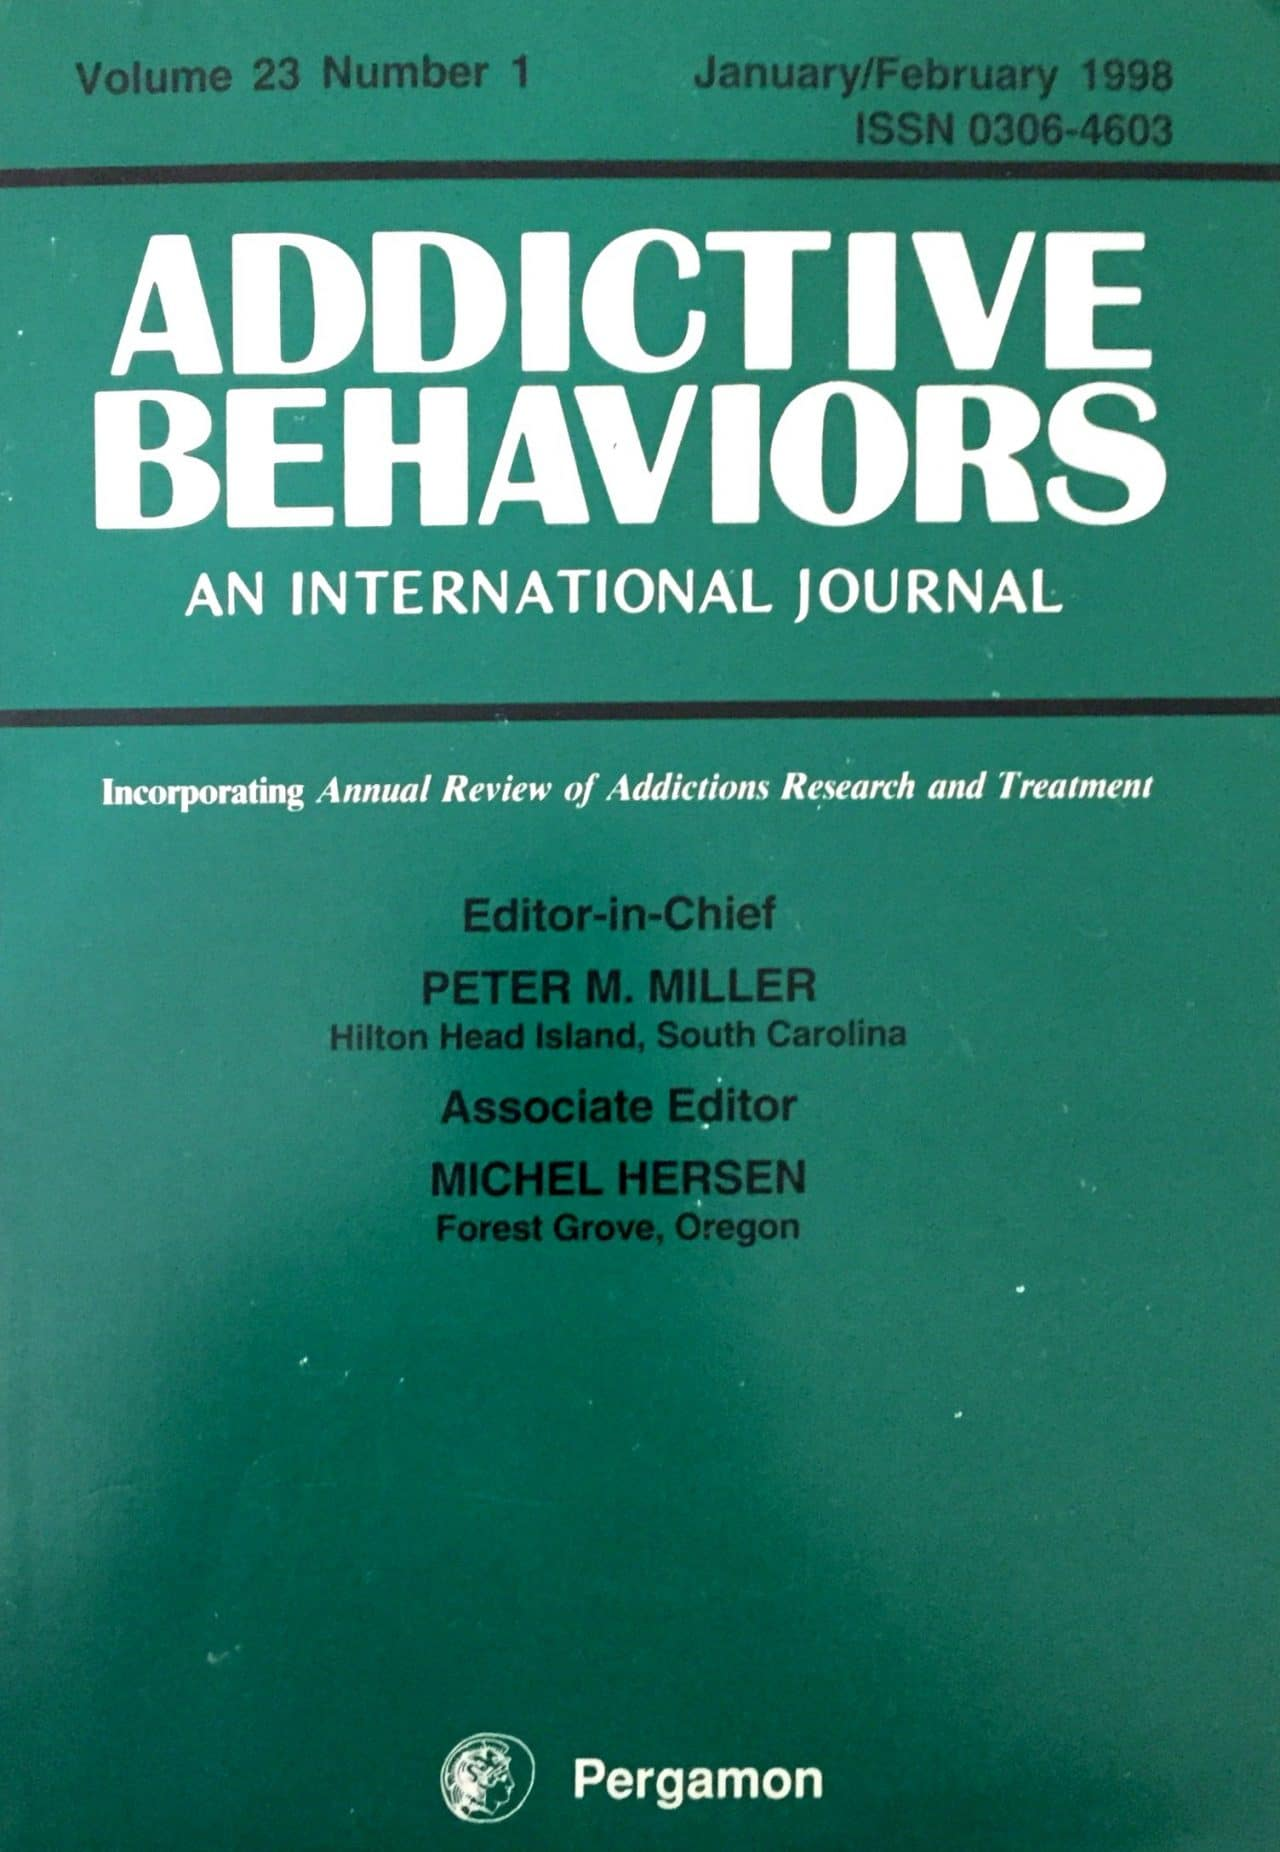 Addictive Behaviors – An International Journal